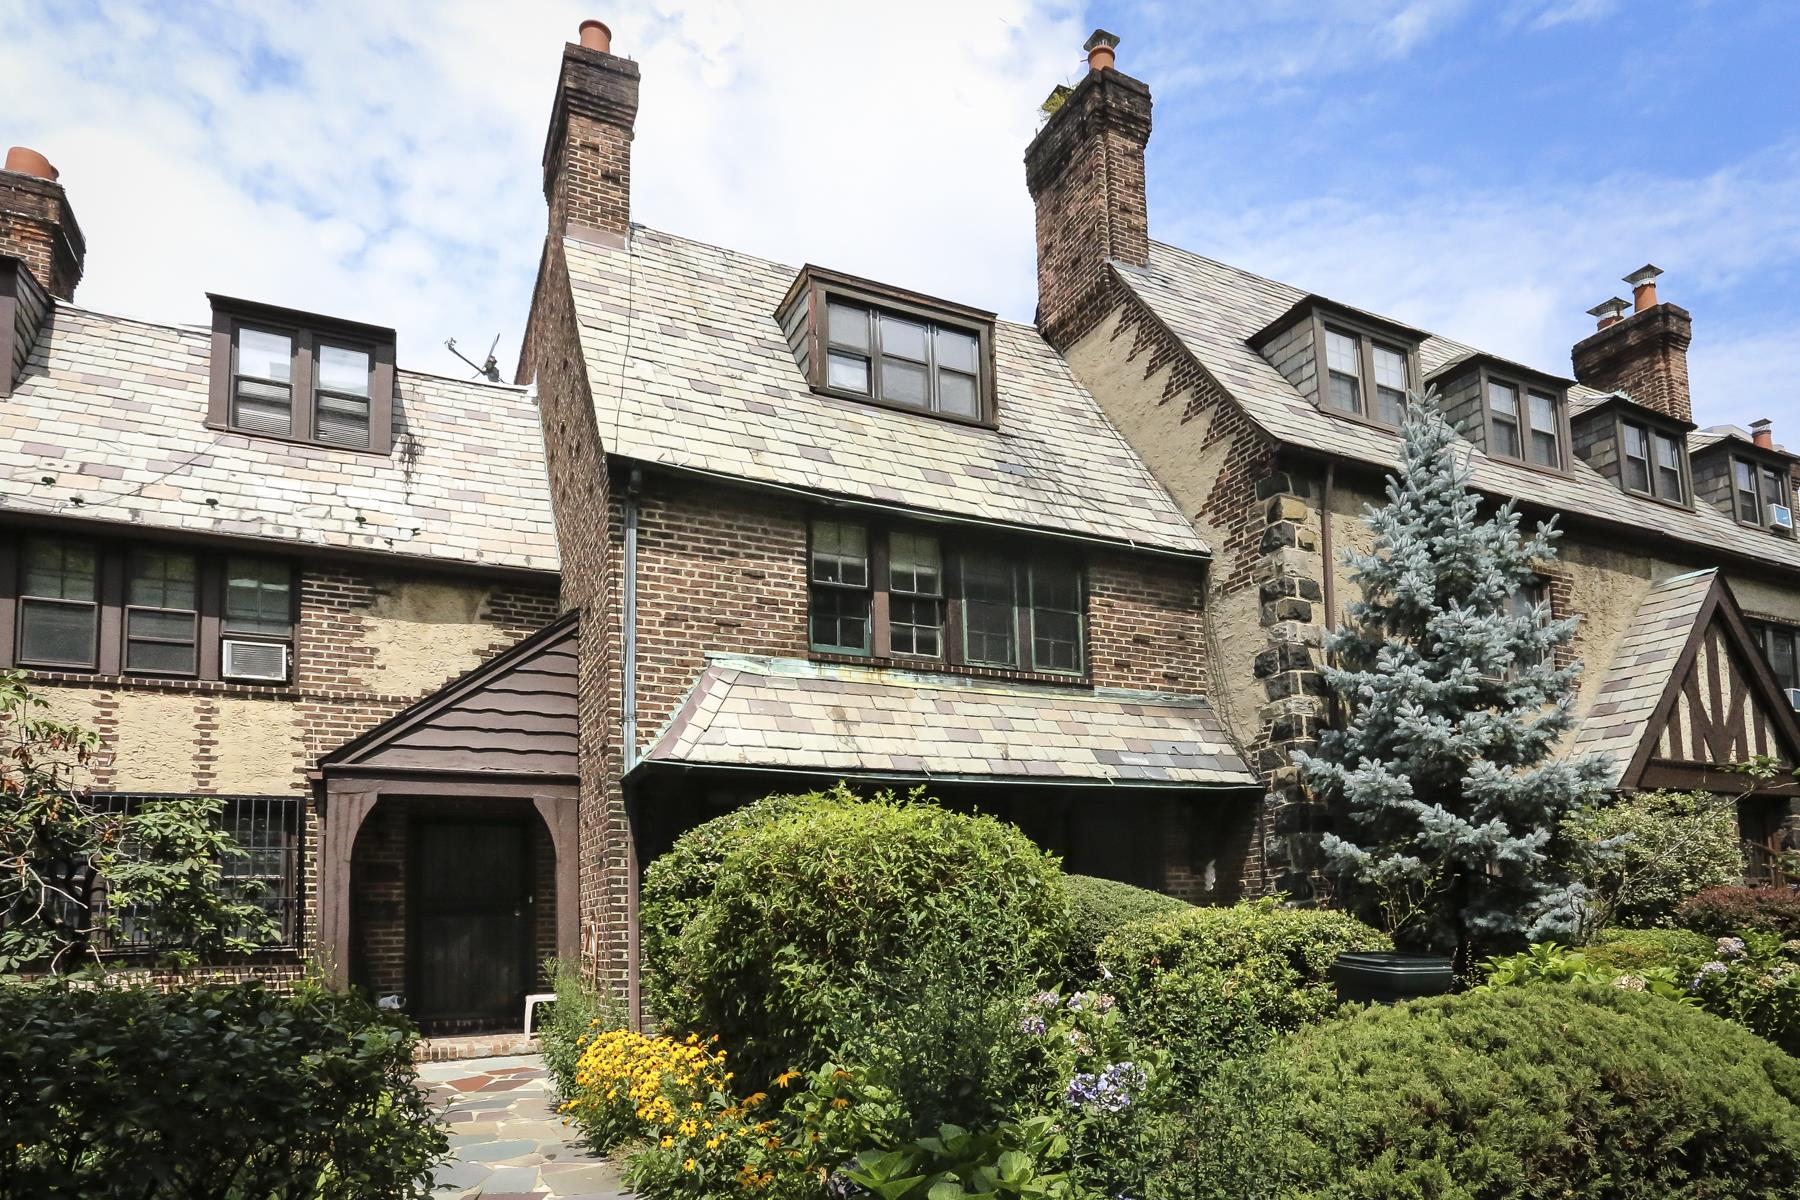 Forest hills gardens homes for sold terrace sotheby 39 s international realty for Forest hills gardens real estate